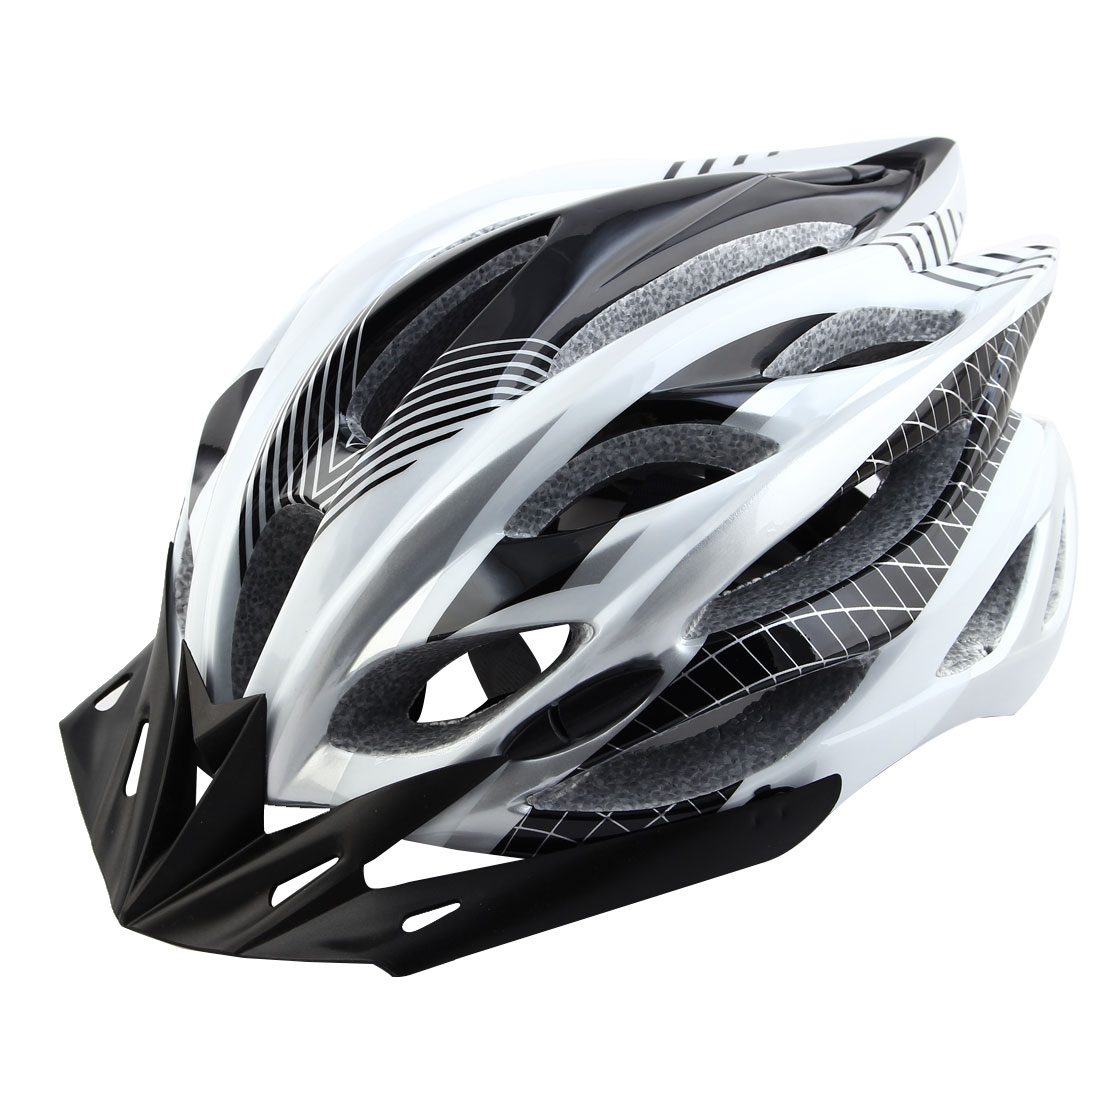 Patent Authorized Adult Unisex Removable Visor Cycling Cap Bicycle Hat Adjustable Safety Bike Helmet White